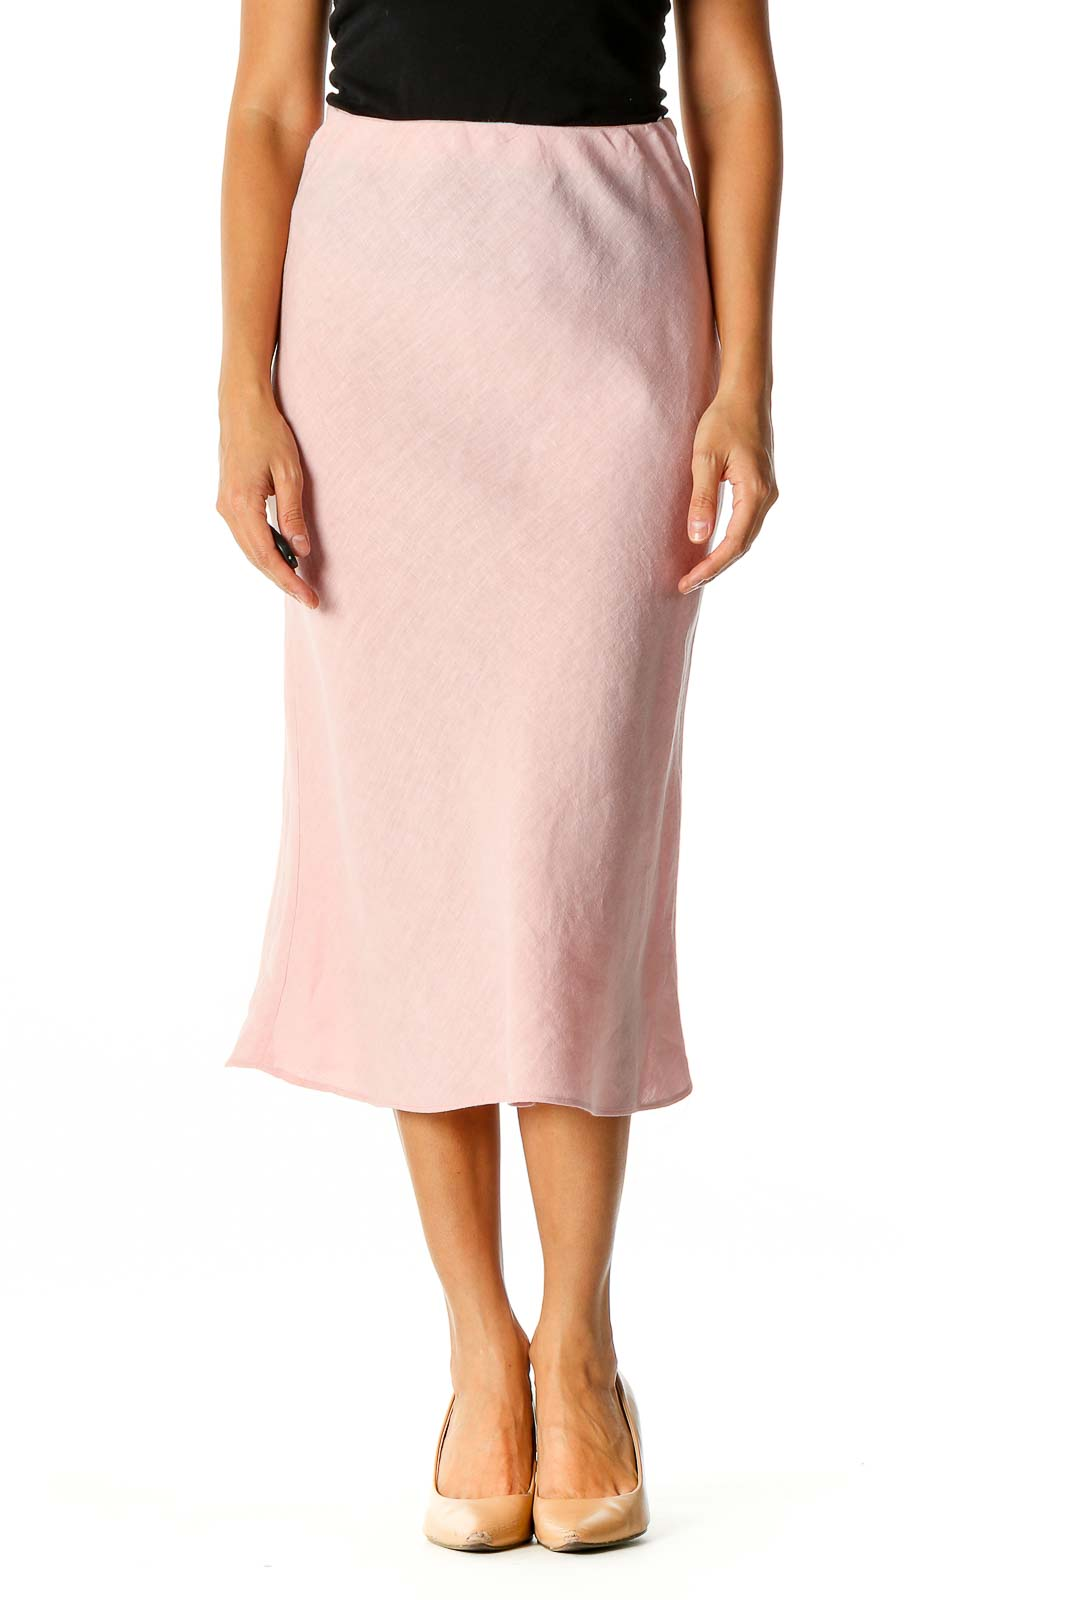 Pink Textured Classic Mermaid Skirt Front